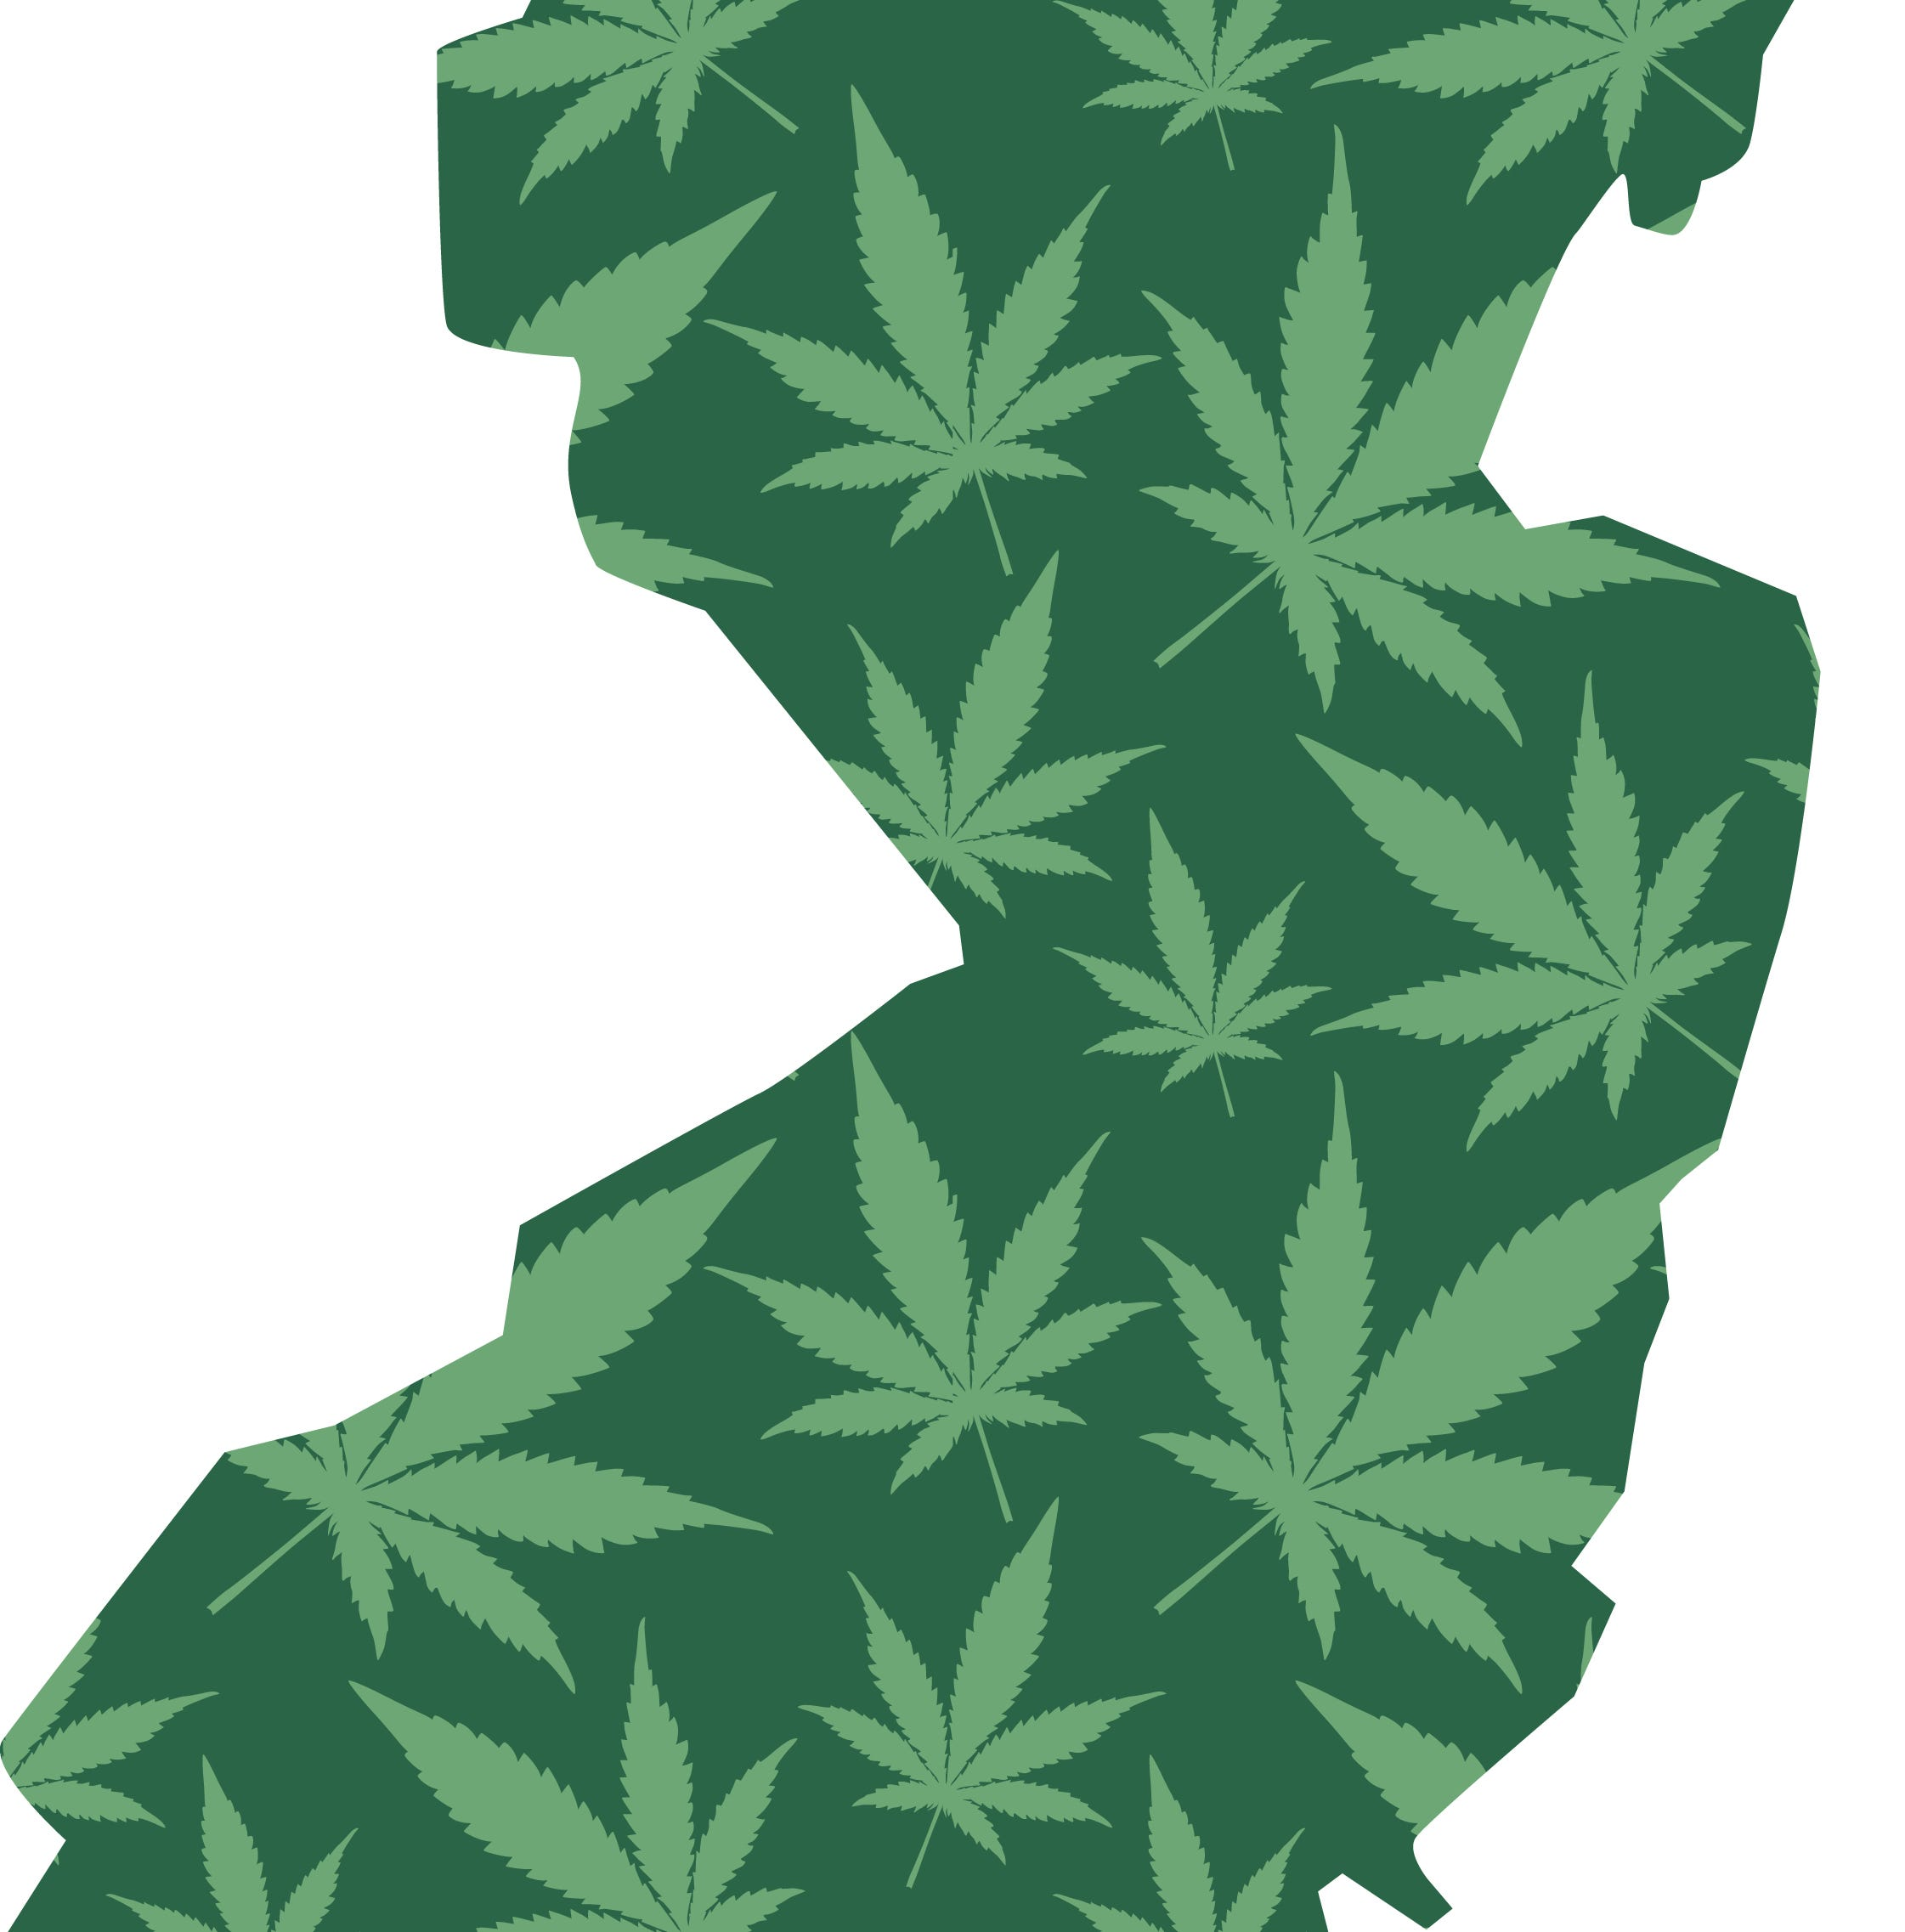 NJ marijuana legalization: Don't do it: Reid/Sabet